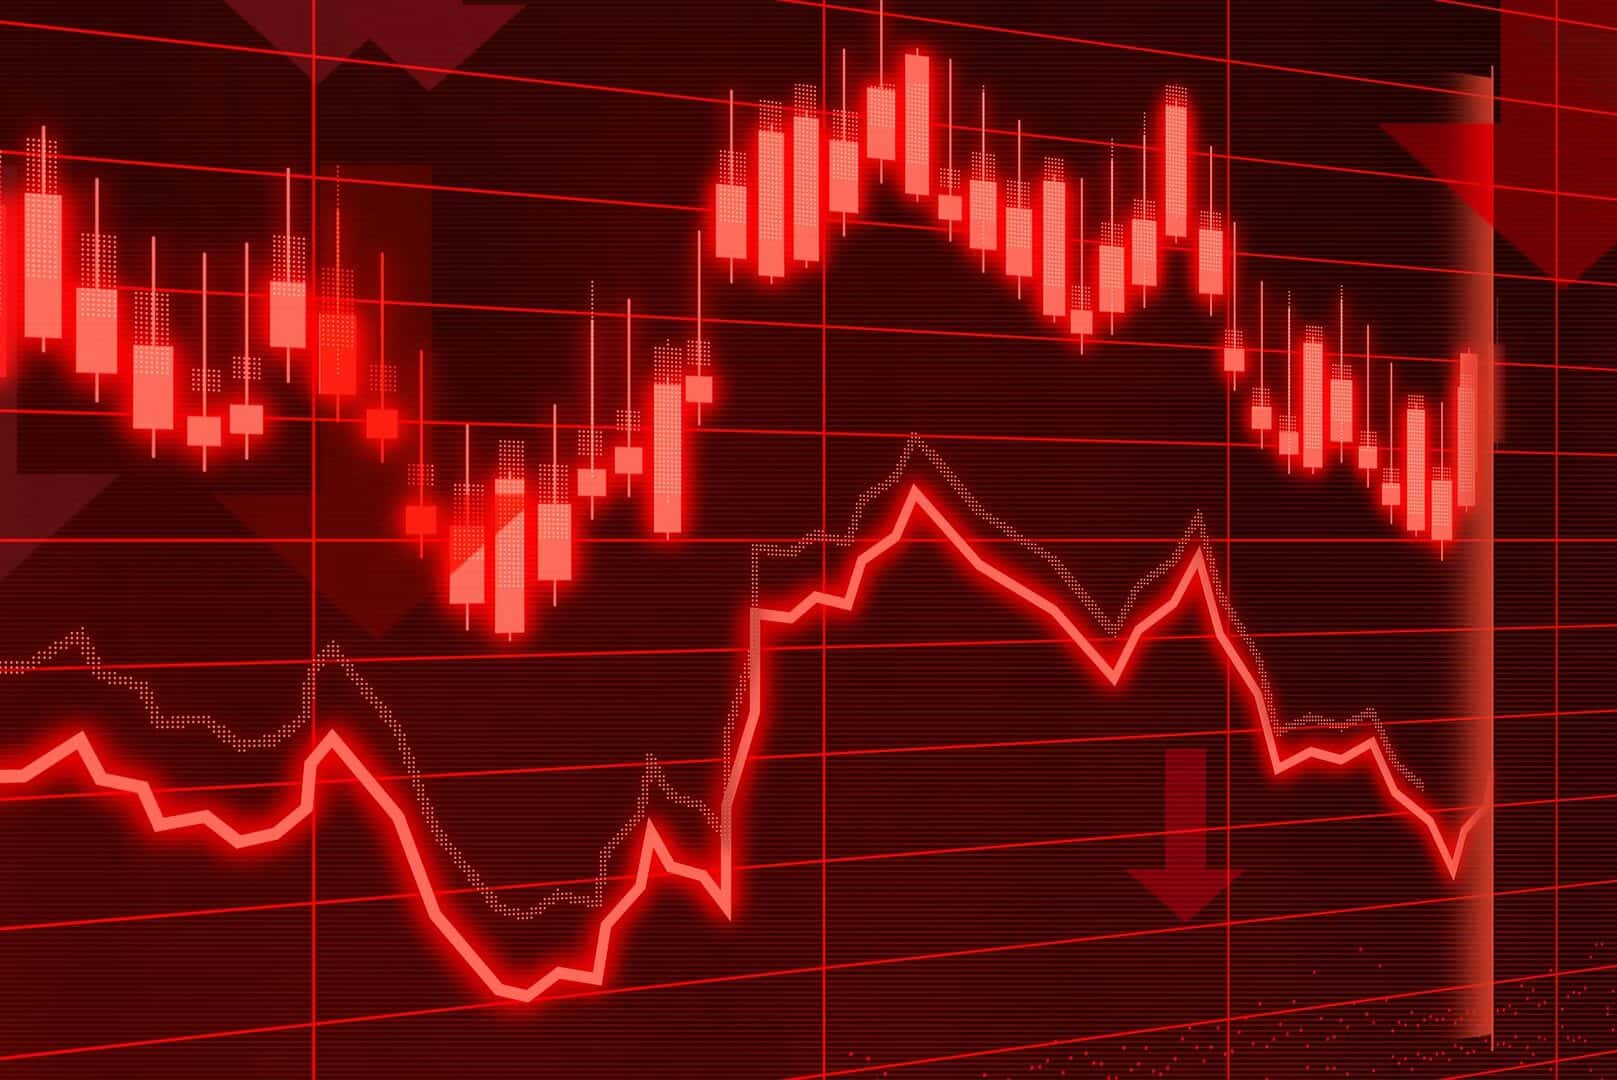 What a qaunt trader does is a facinating look into the world of complex finances.